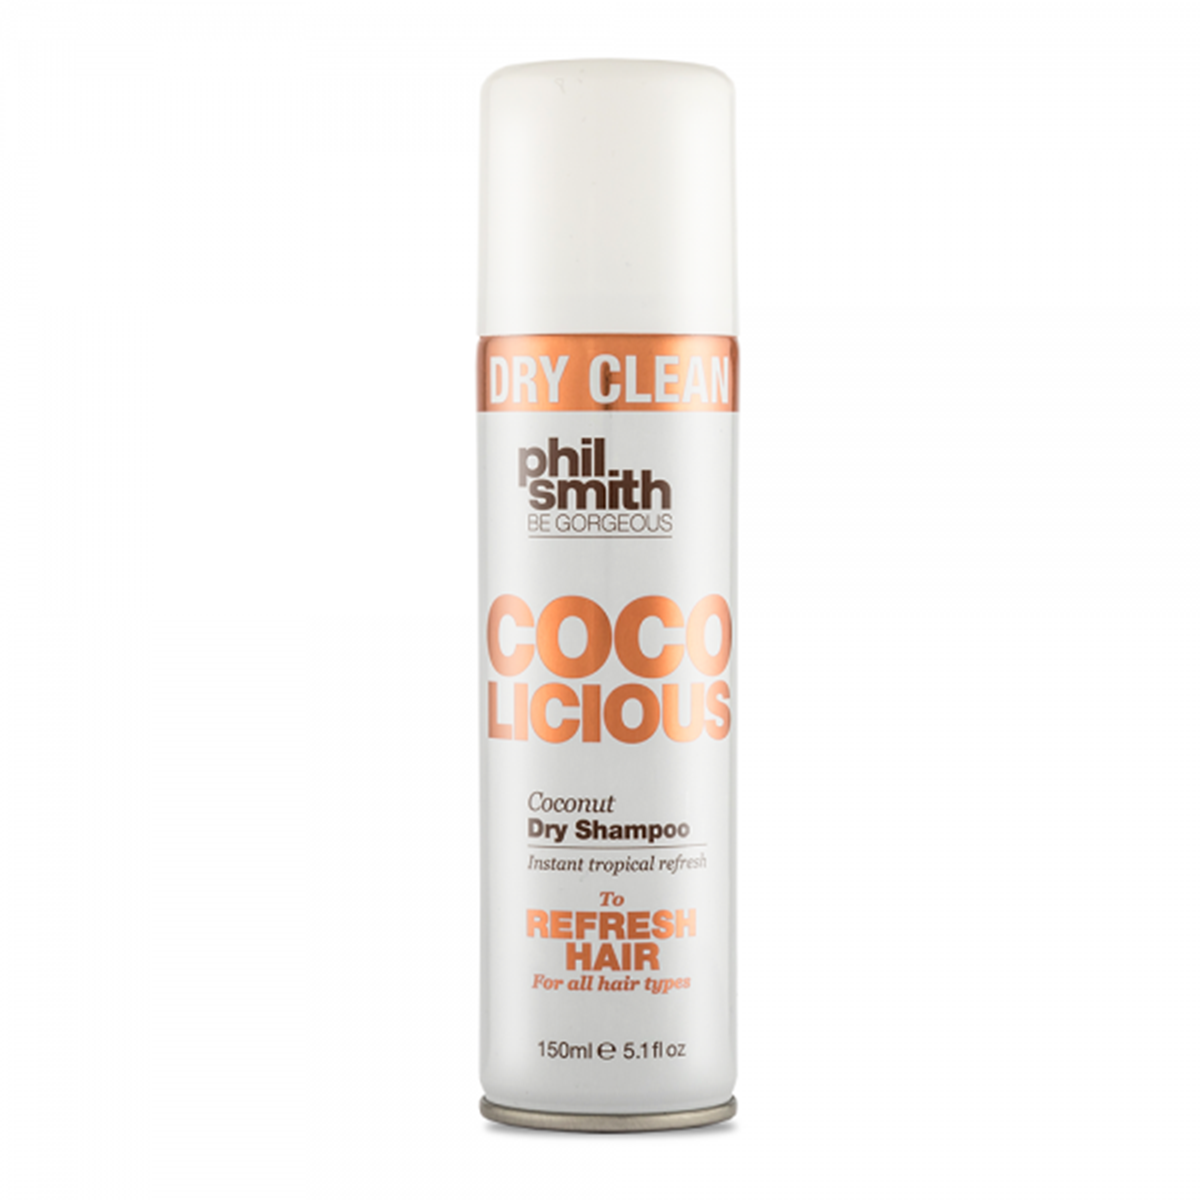 Phil Smith Coco Licious Kuru Şampuan 150 ml